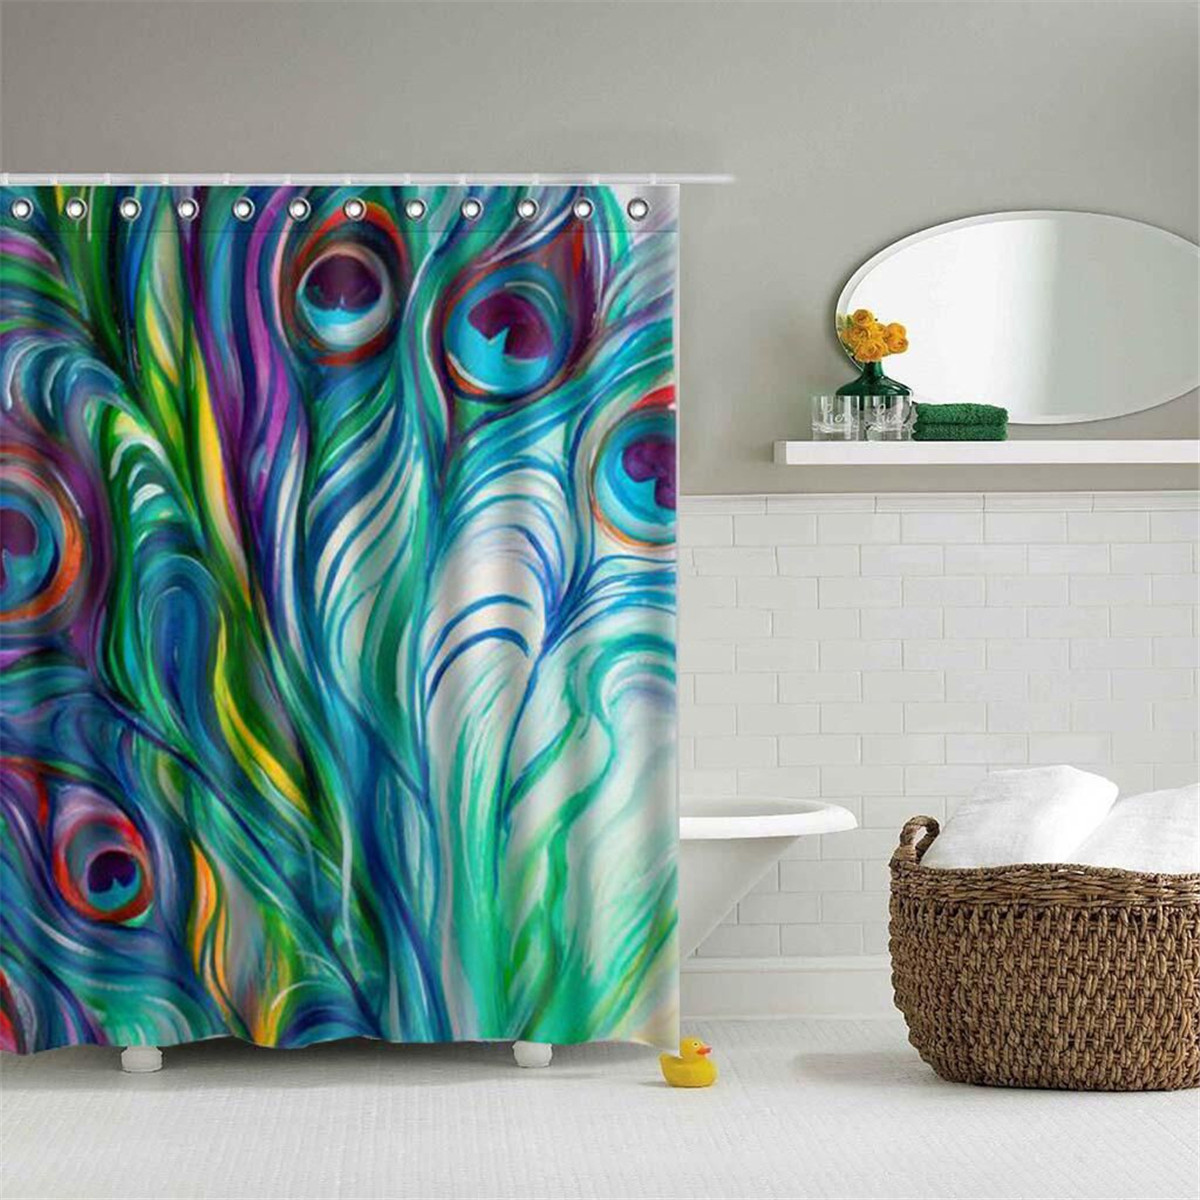 Details About Peacock Feather Waterproof Polyester Fabric Shower Curtain Bathroom W 12